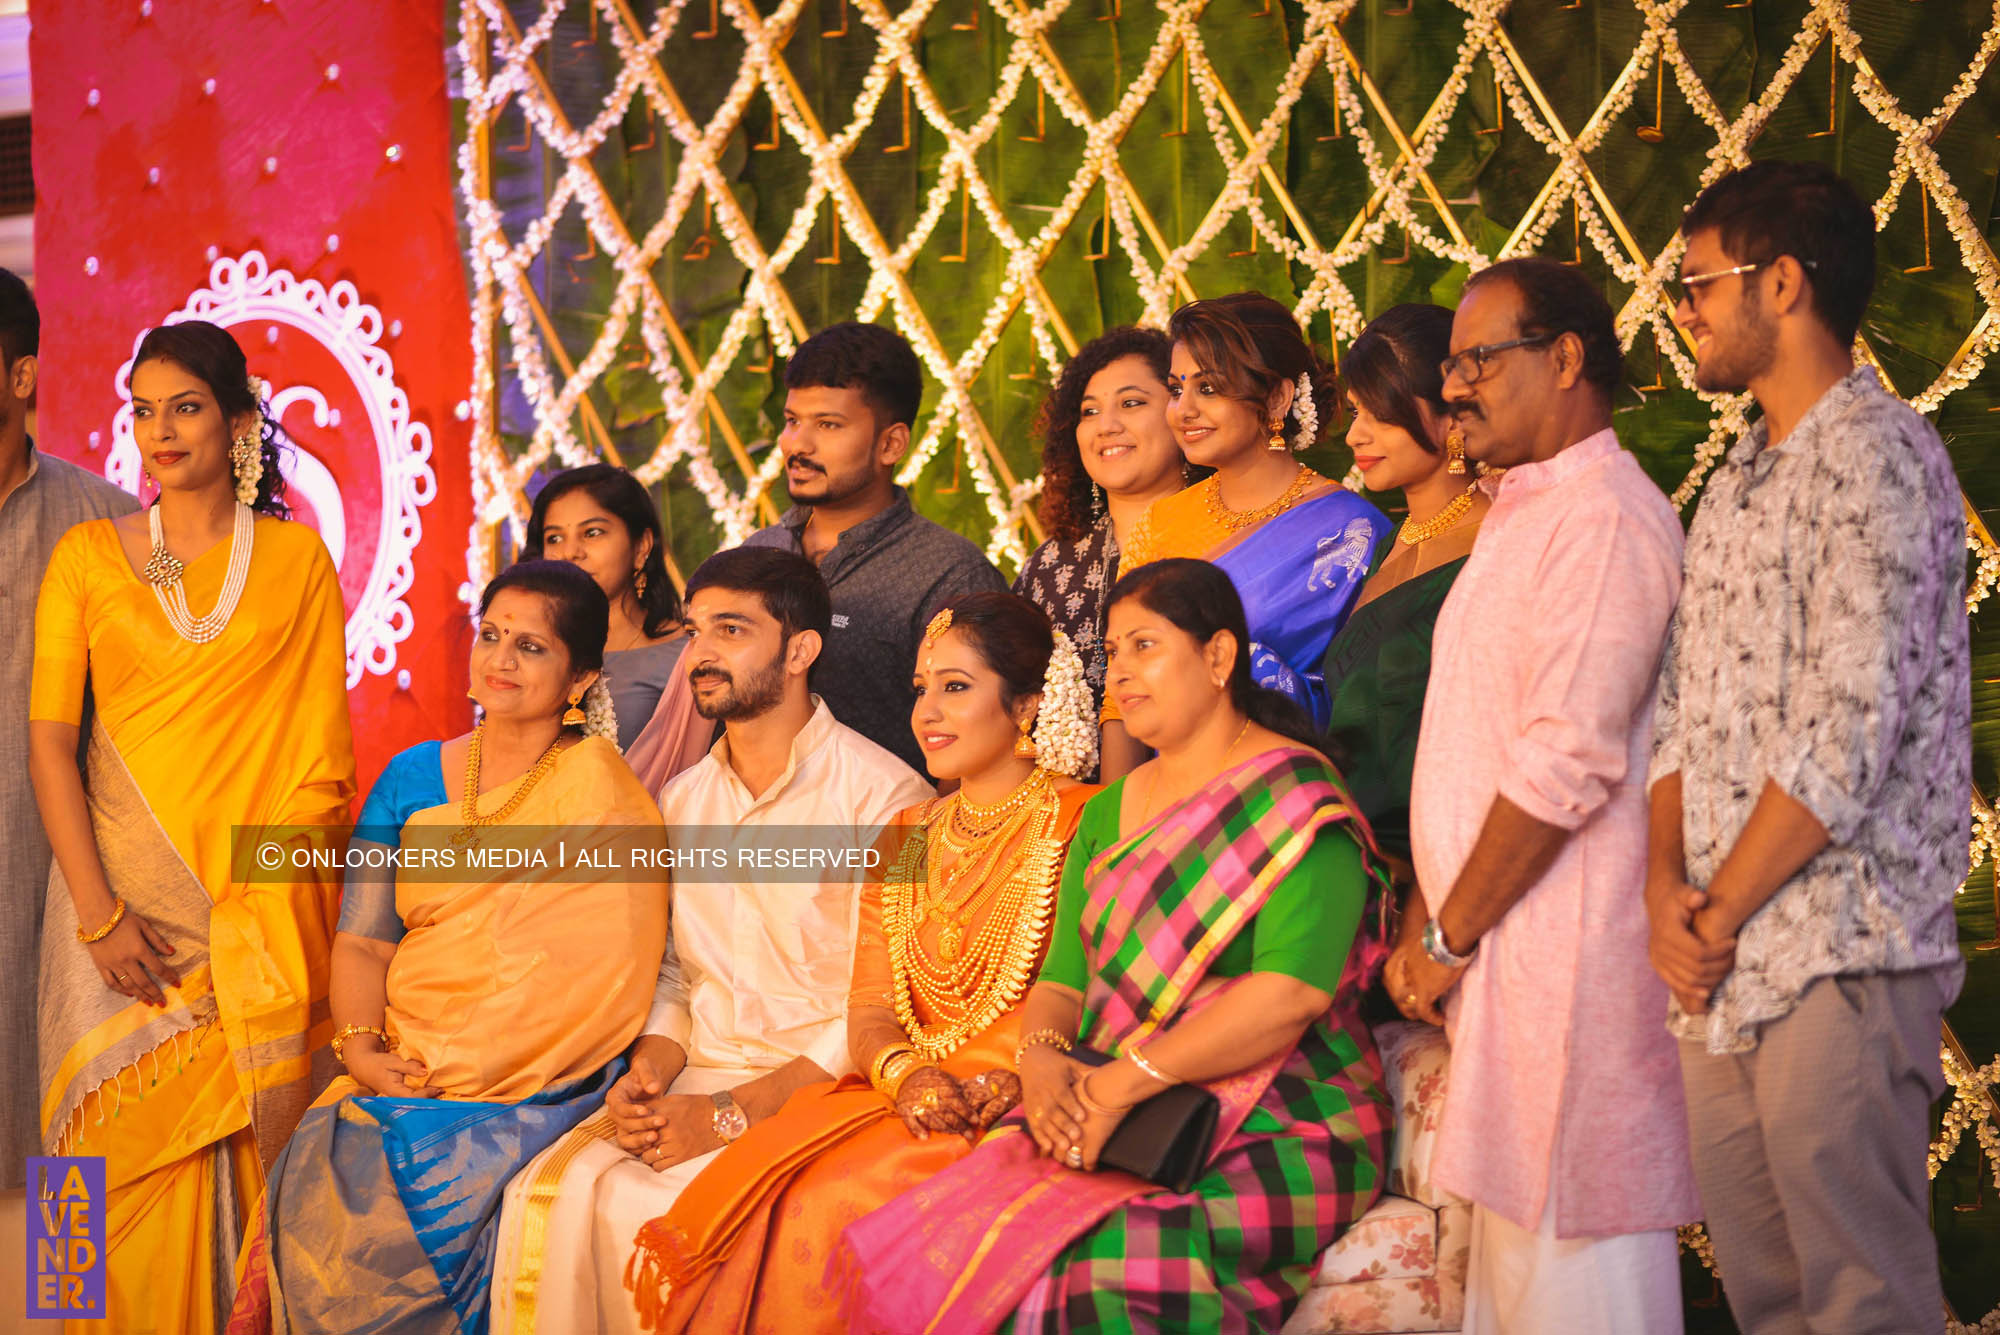 http://onlookersmedia.in/wp-content/uploads/2018/05/sreejith-vijay-wedding-stills-images-96.jpg